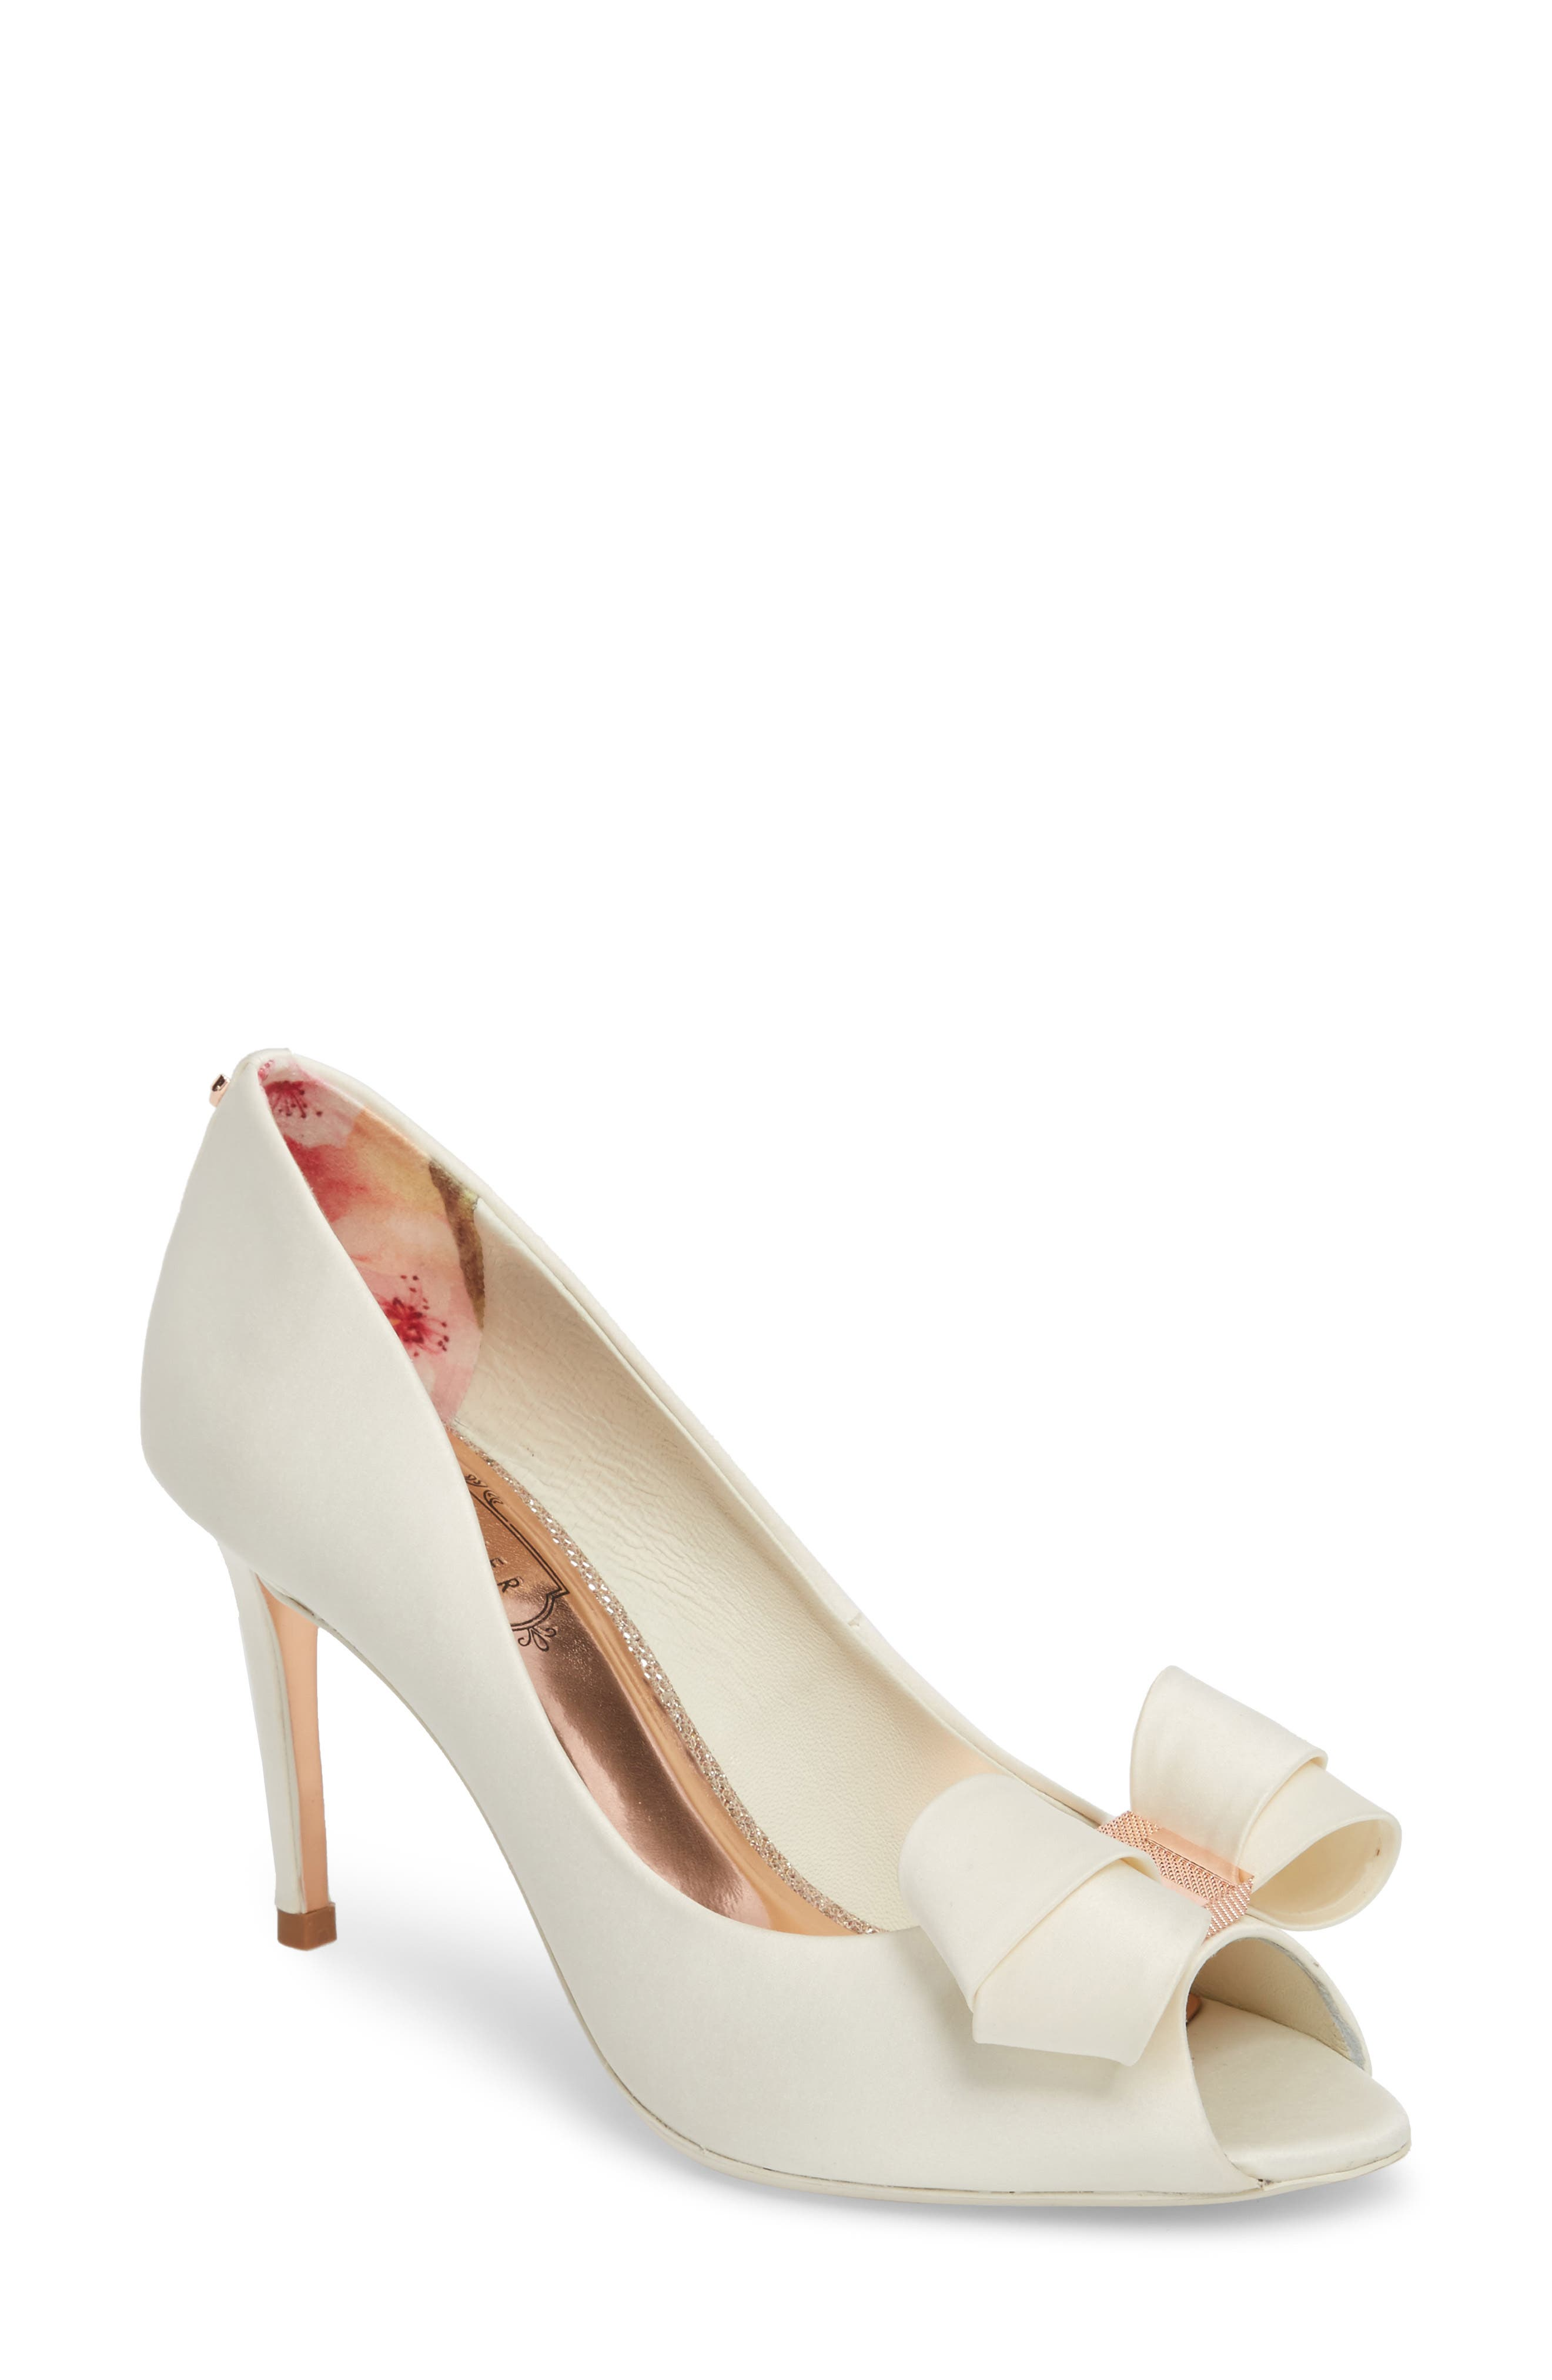 Main Image - Ted Baker London Vylett Peep Toe Pump (Women)